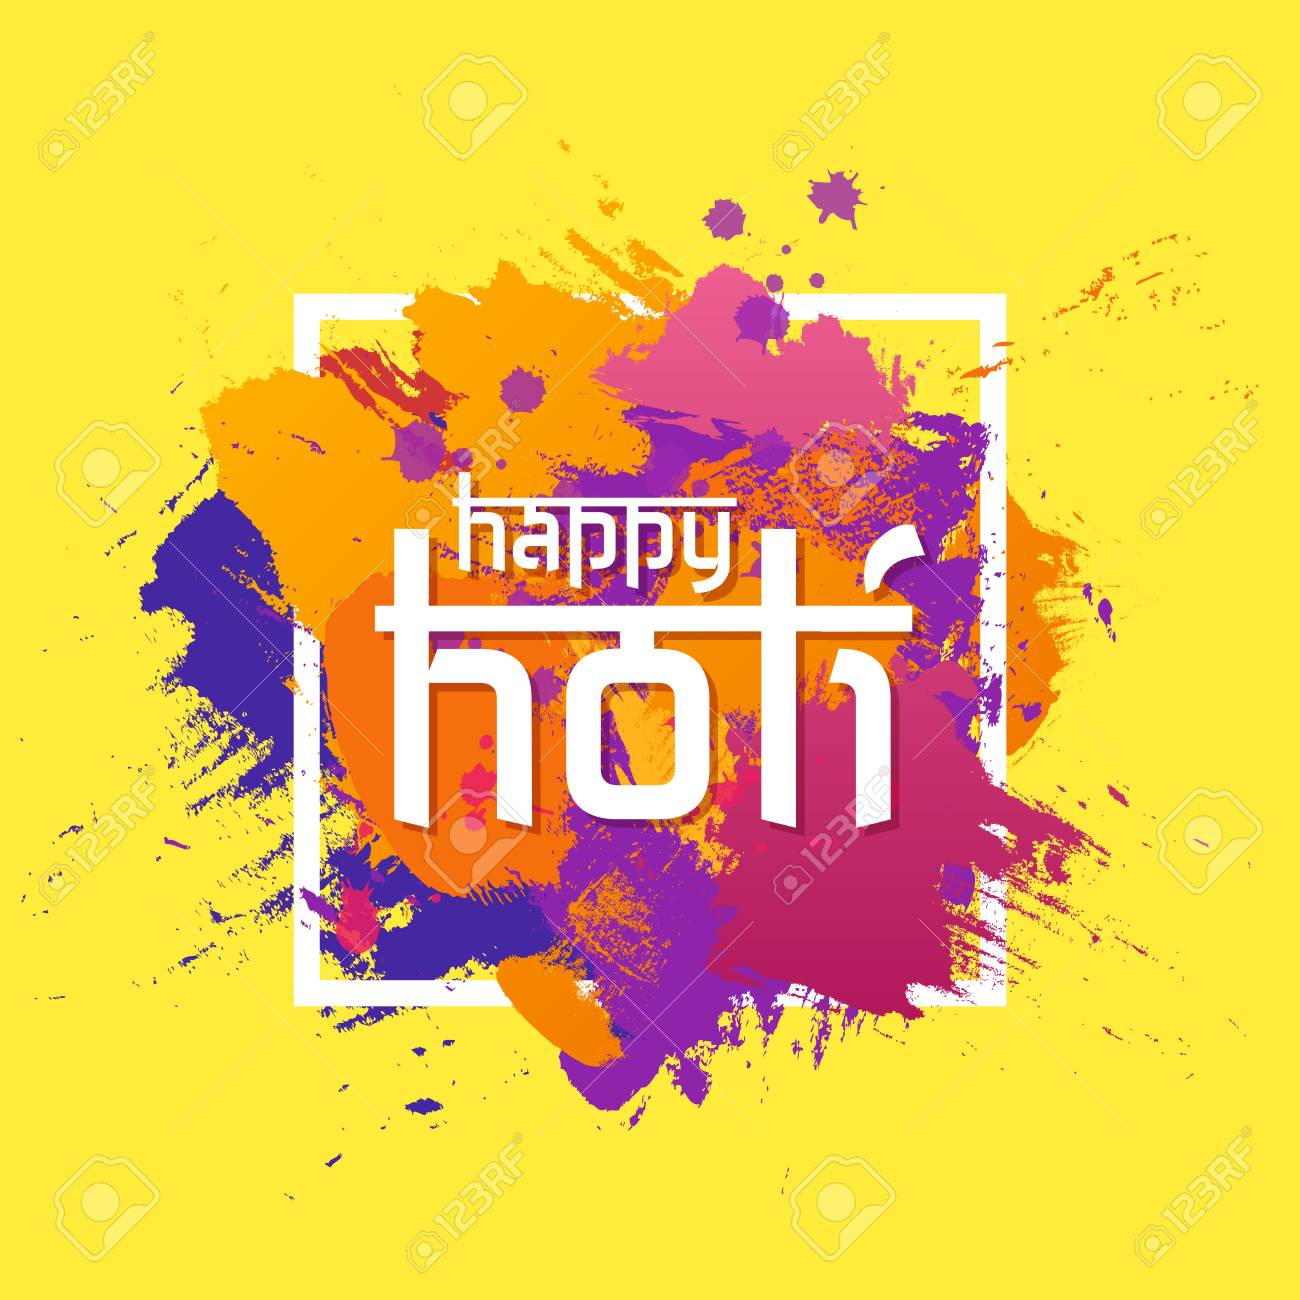 Happy Holi spring festival of colors greeting vector background with colorful powder paint clouds. Blue, yellow, pink and violet. Vector illustration. - 94316401